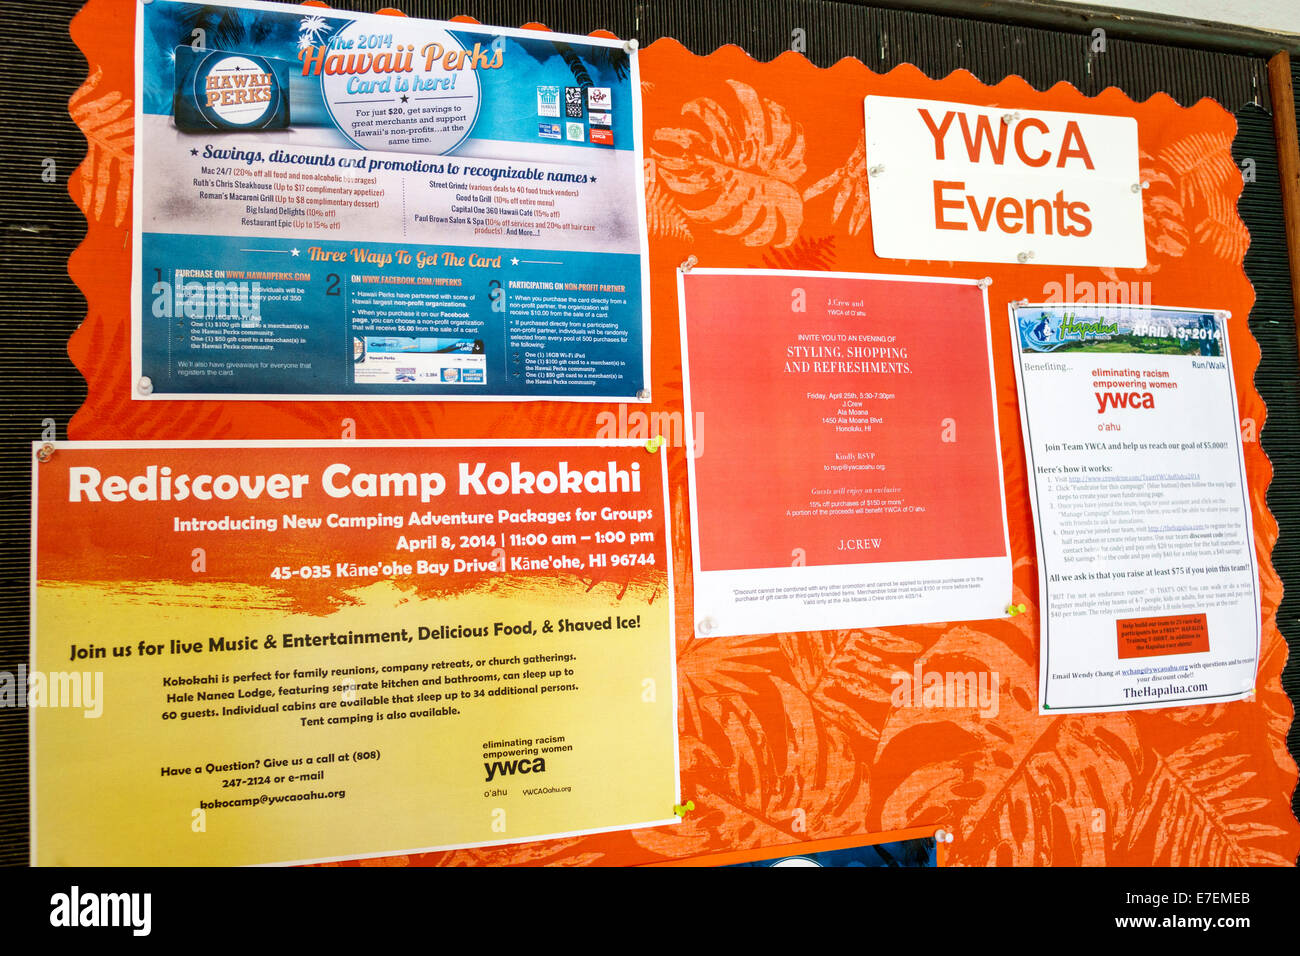 Hawaii Oahu Hawaiian Honolulu Young Women's Christian Association YWCA bulletin board community events announcements - Stock Image